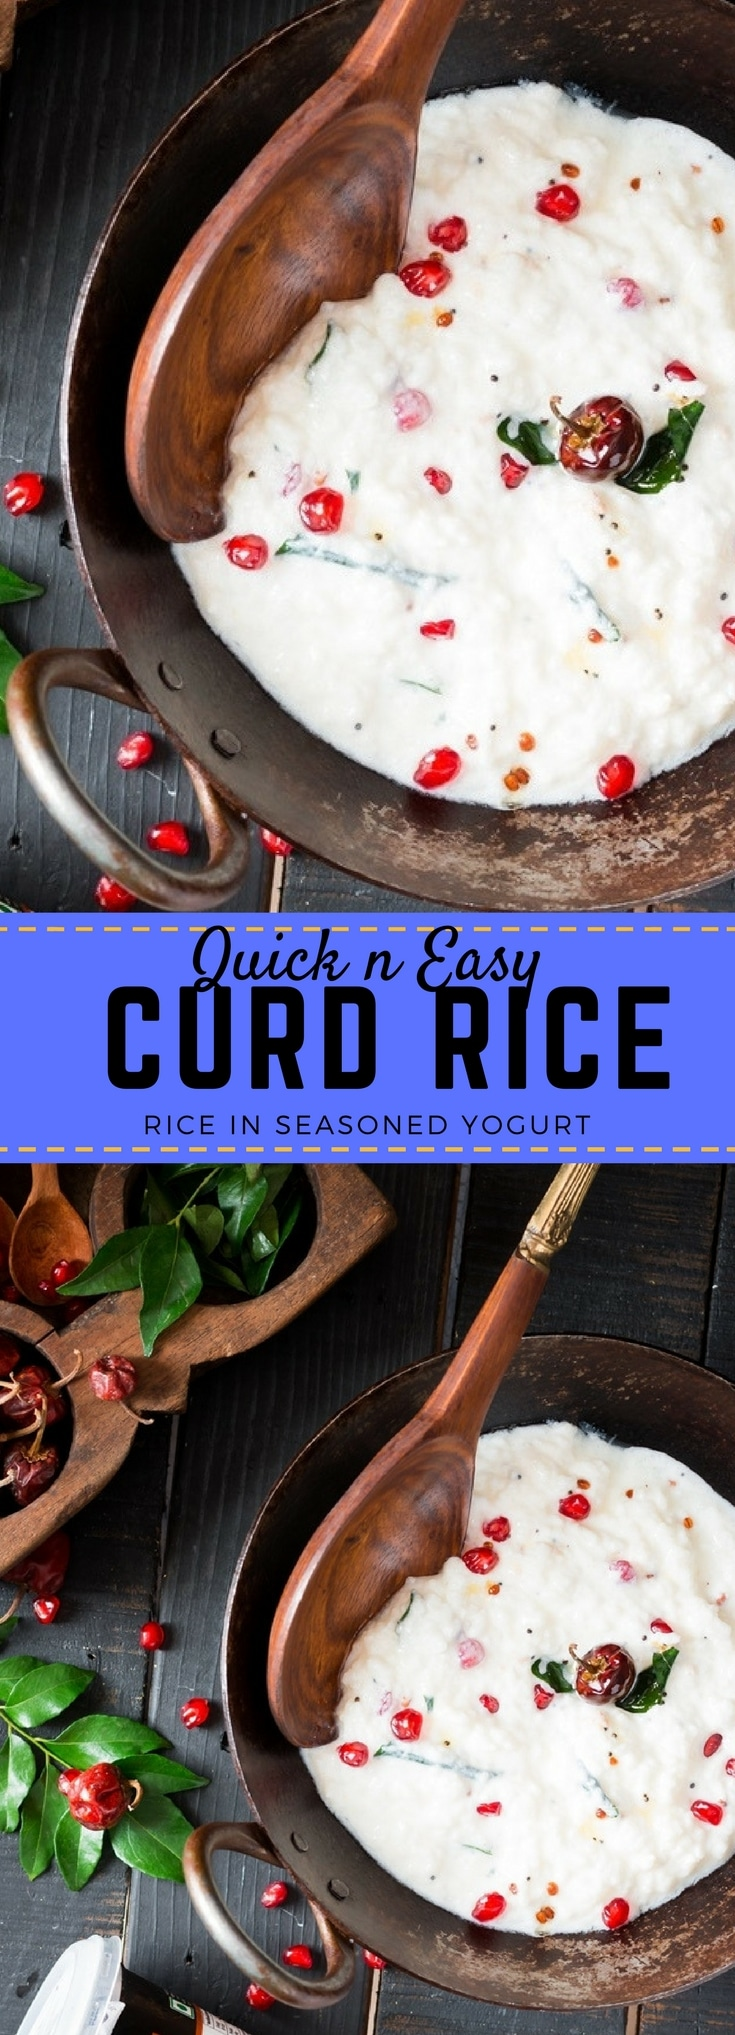 curd rice is simple and flavorful. Rice is mixed with yogurt and tempered with Indian spices.